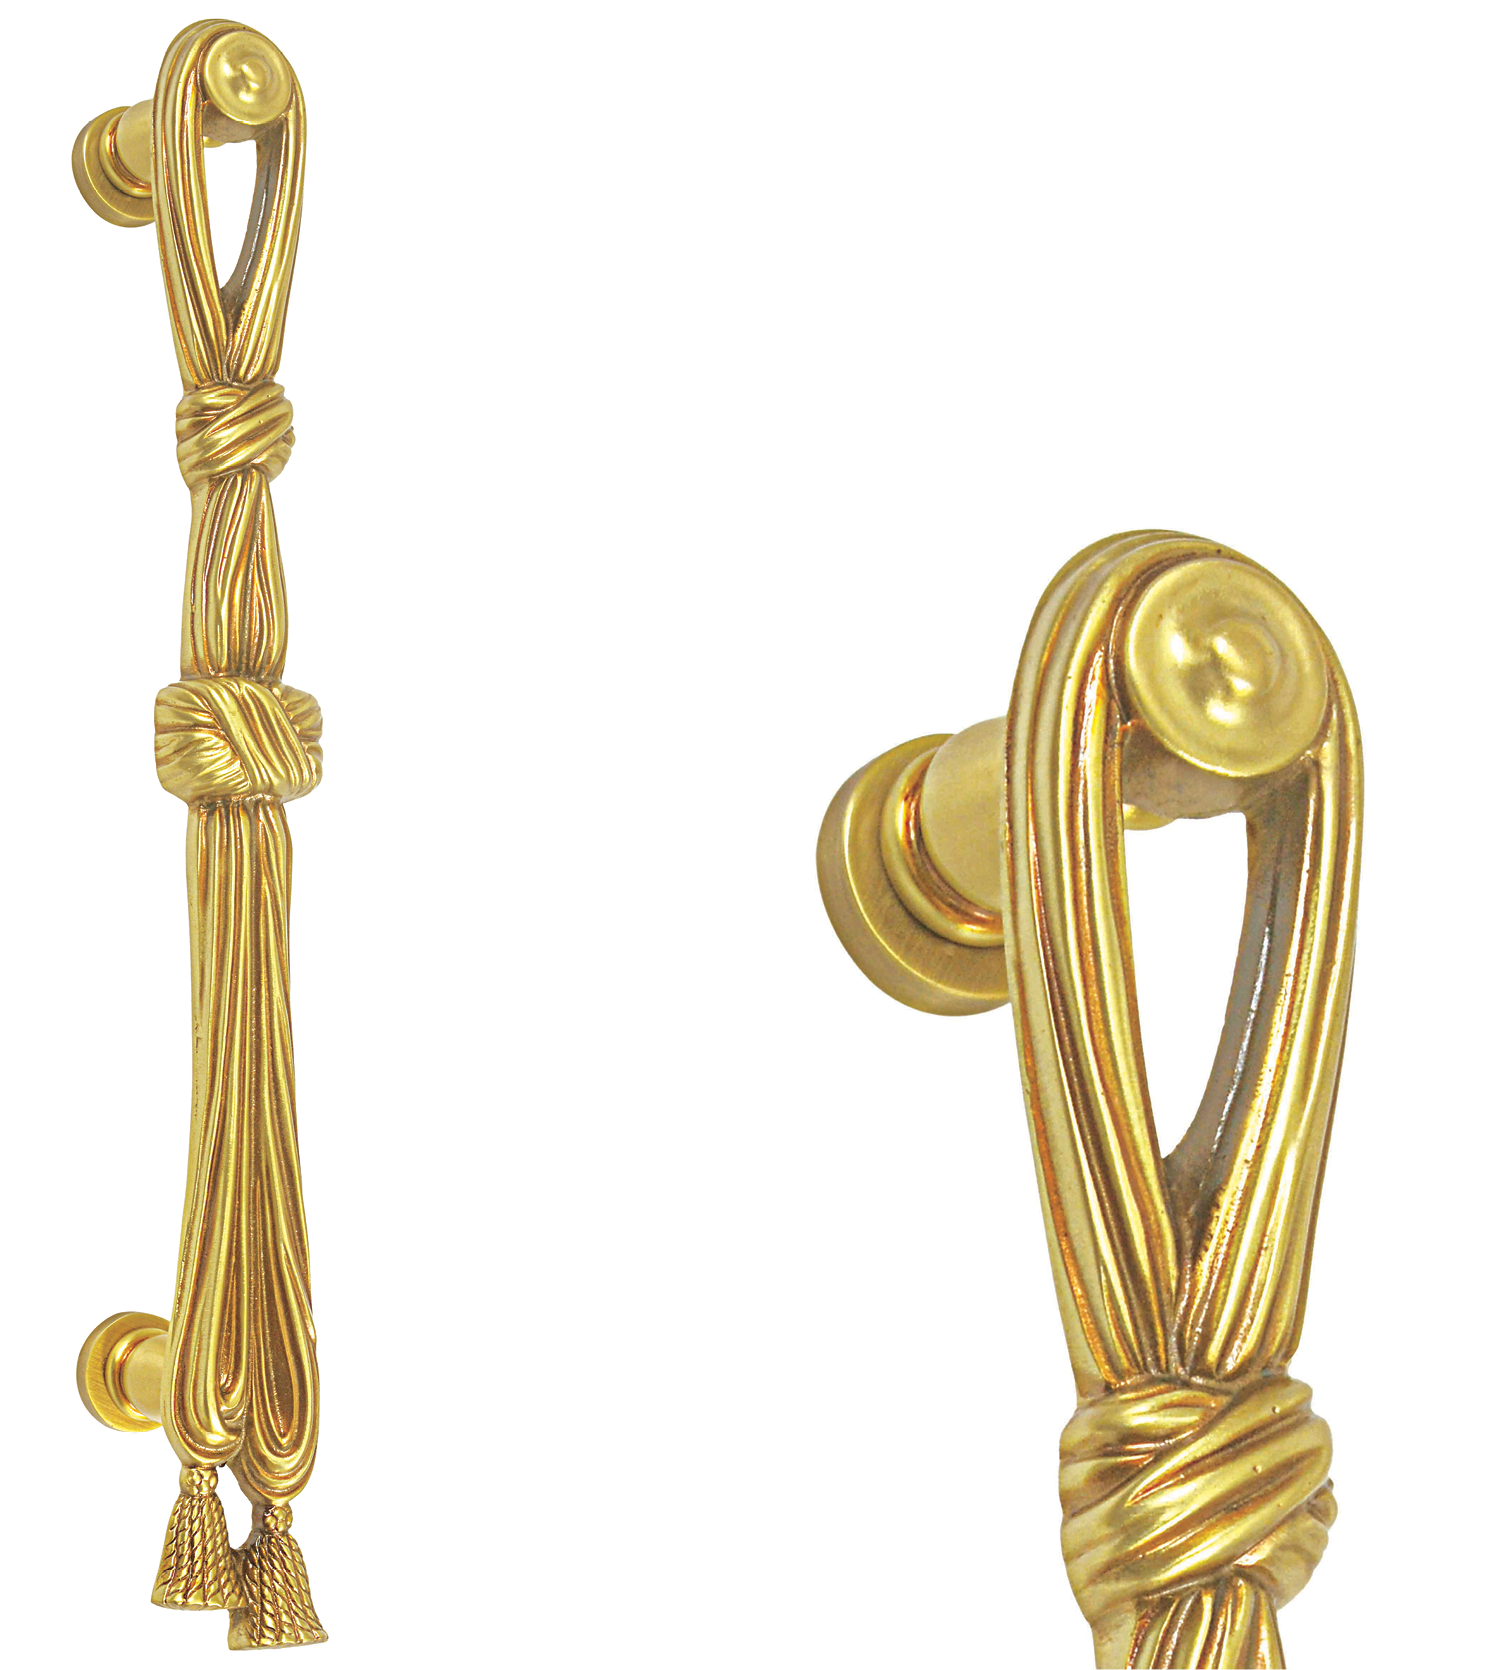 Fusion main door pull handle and locks for glass and wooden doors  for apartments